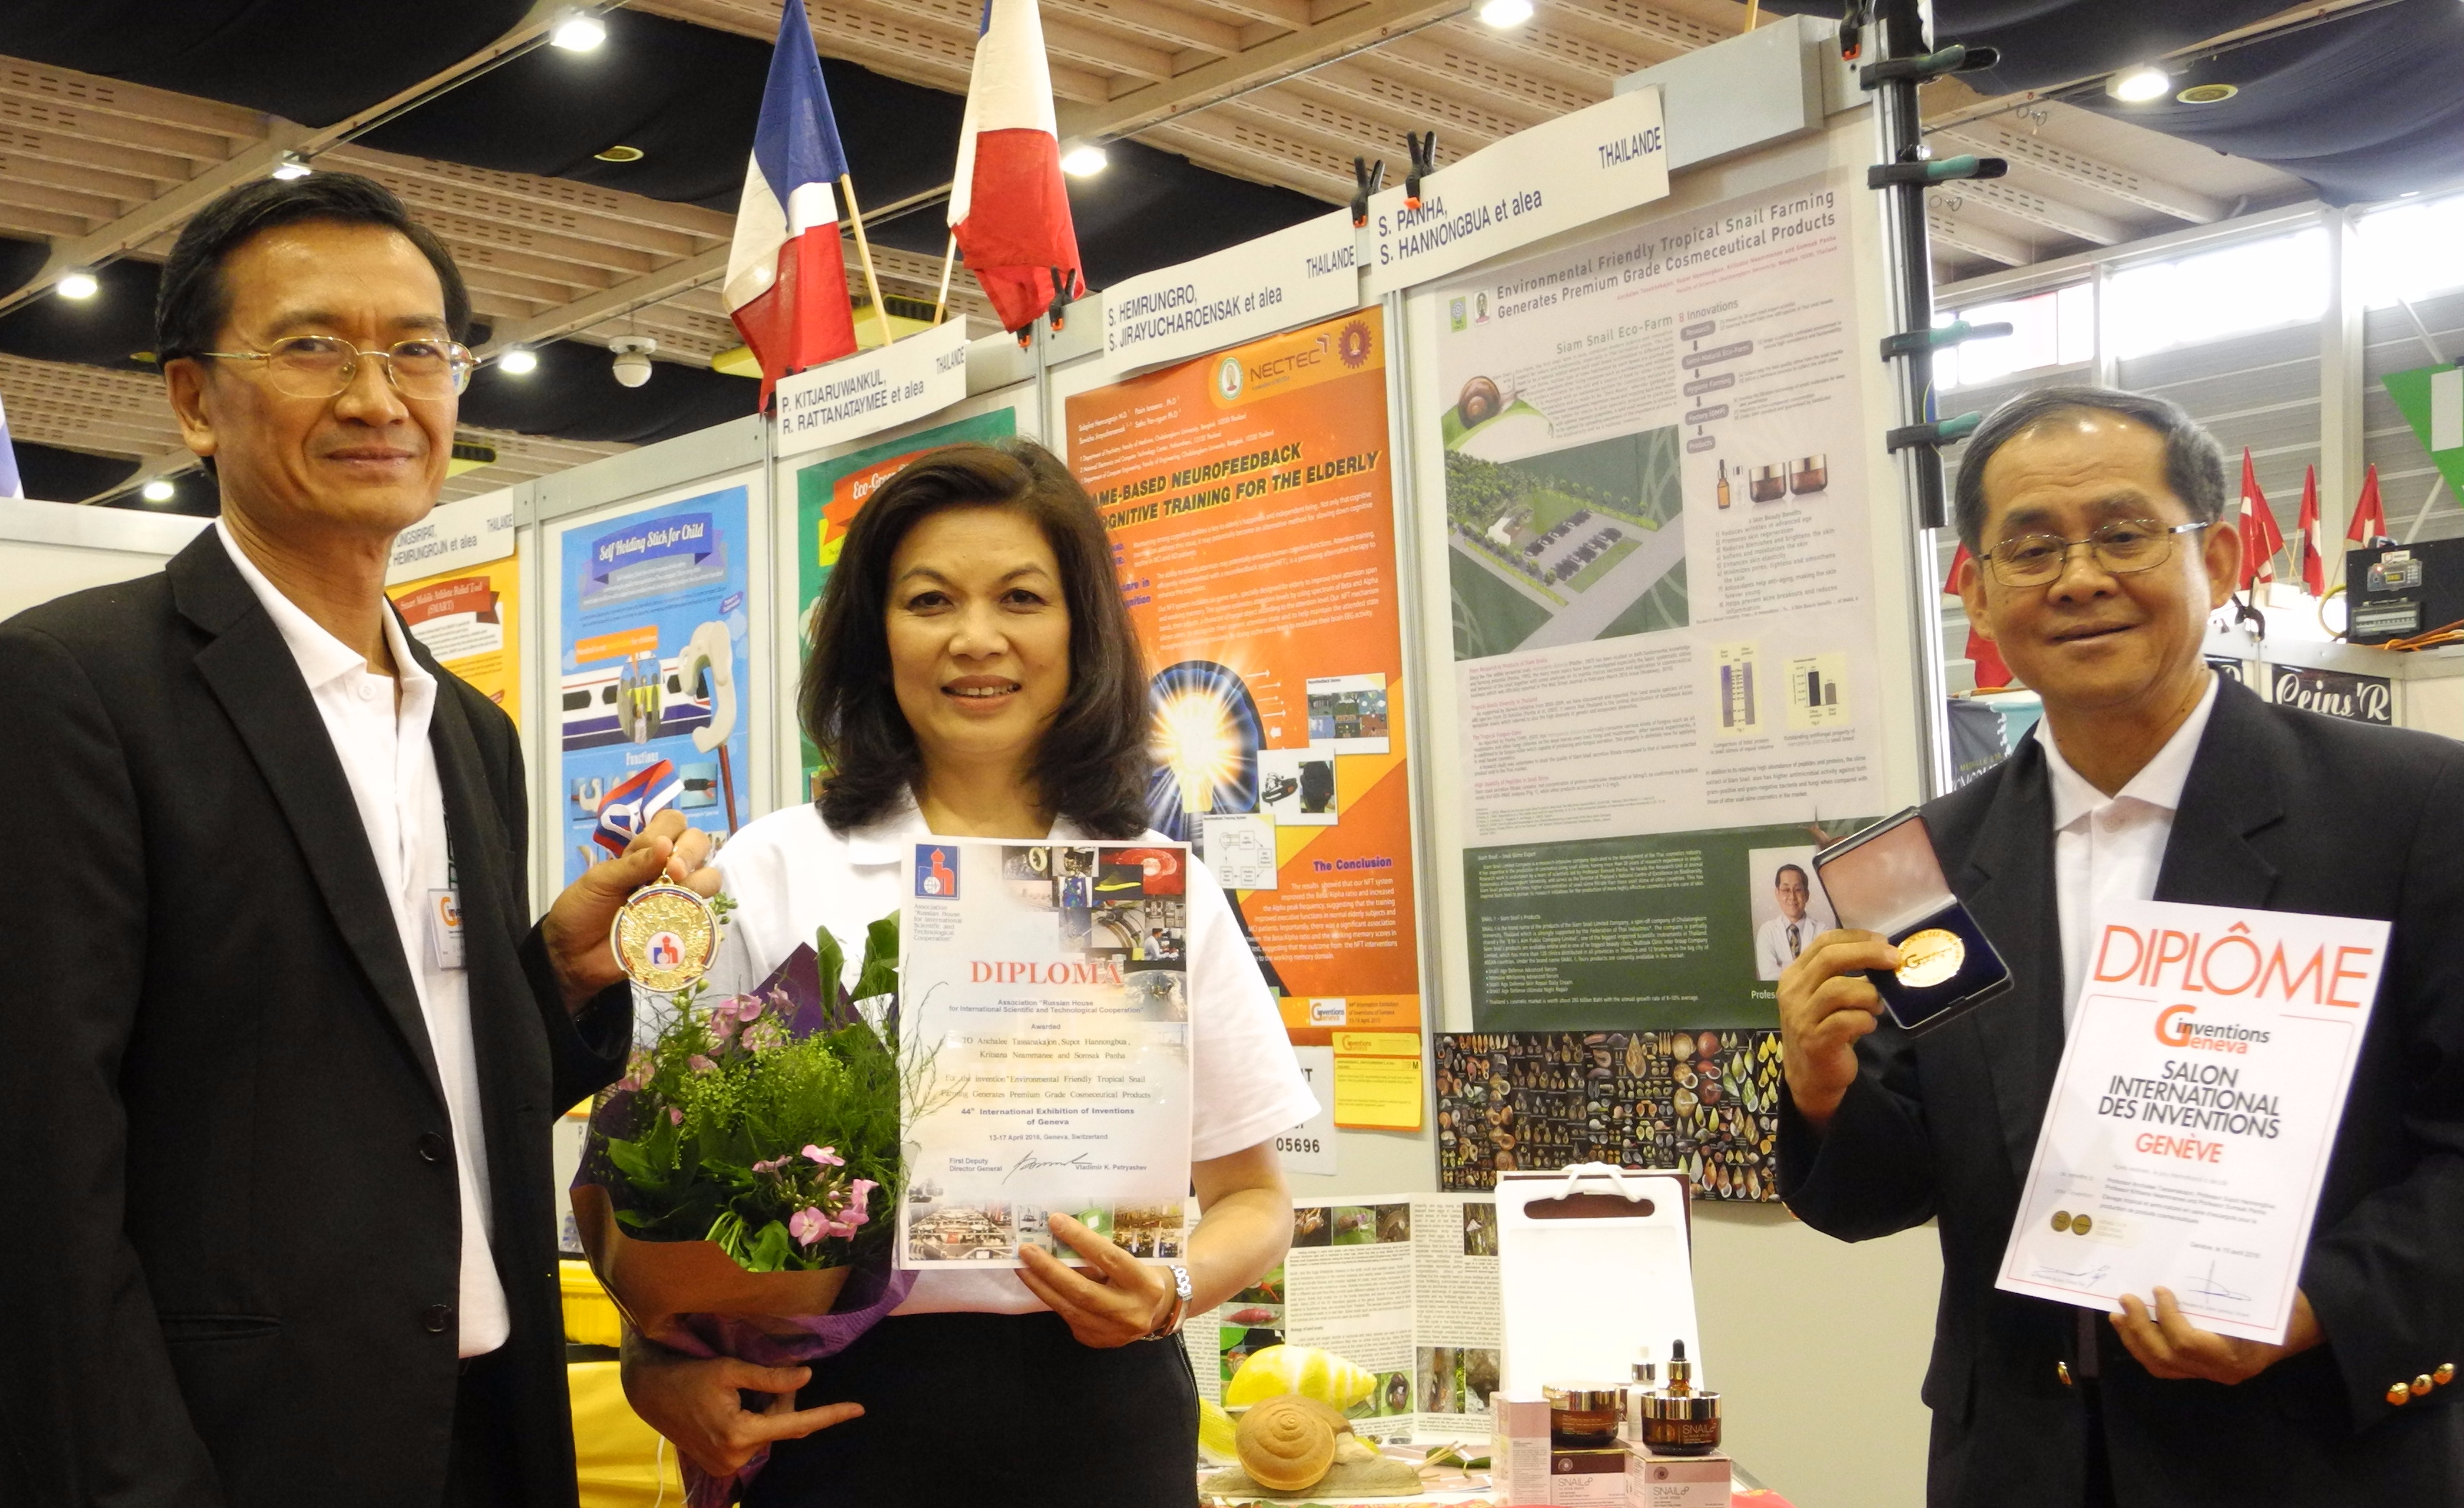 ข่าว Siamsnail got Golden Medal from the 44th International Exhibition of Invention of Geneva, Geneva, Switzerland. SiamSnail